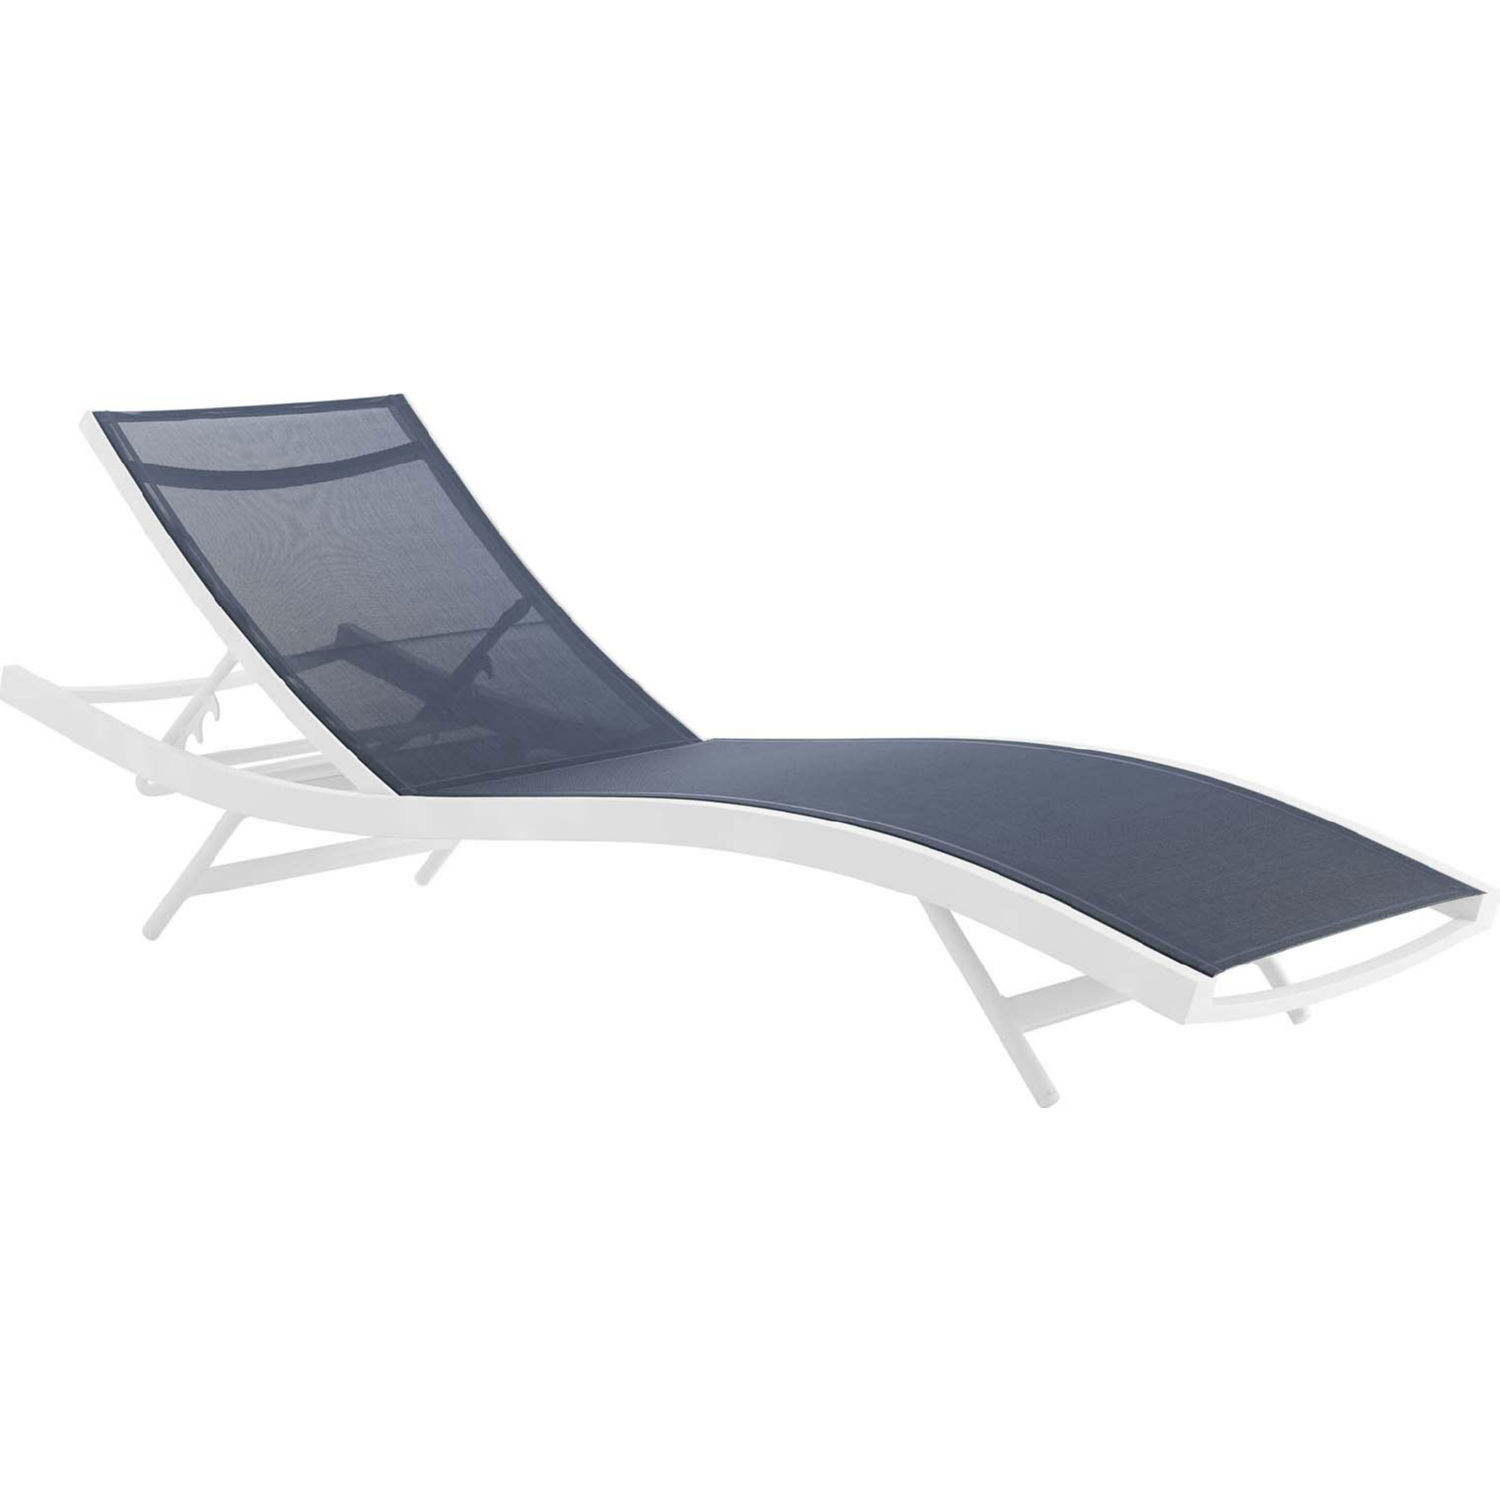 Glimpse Outdoor Patio Chaise Lounge Chair In Navy Mesh By Modway